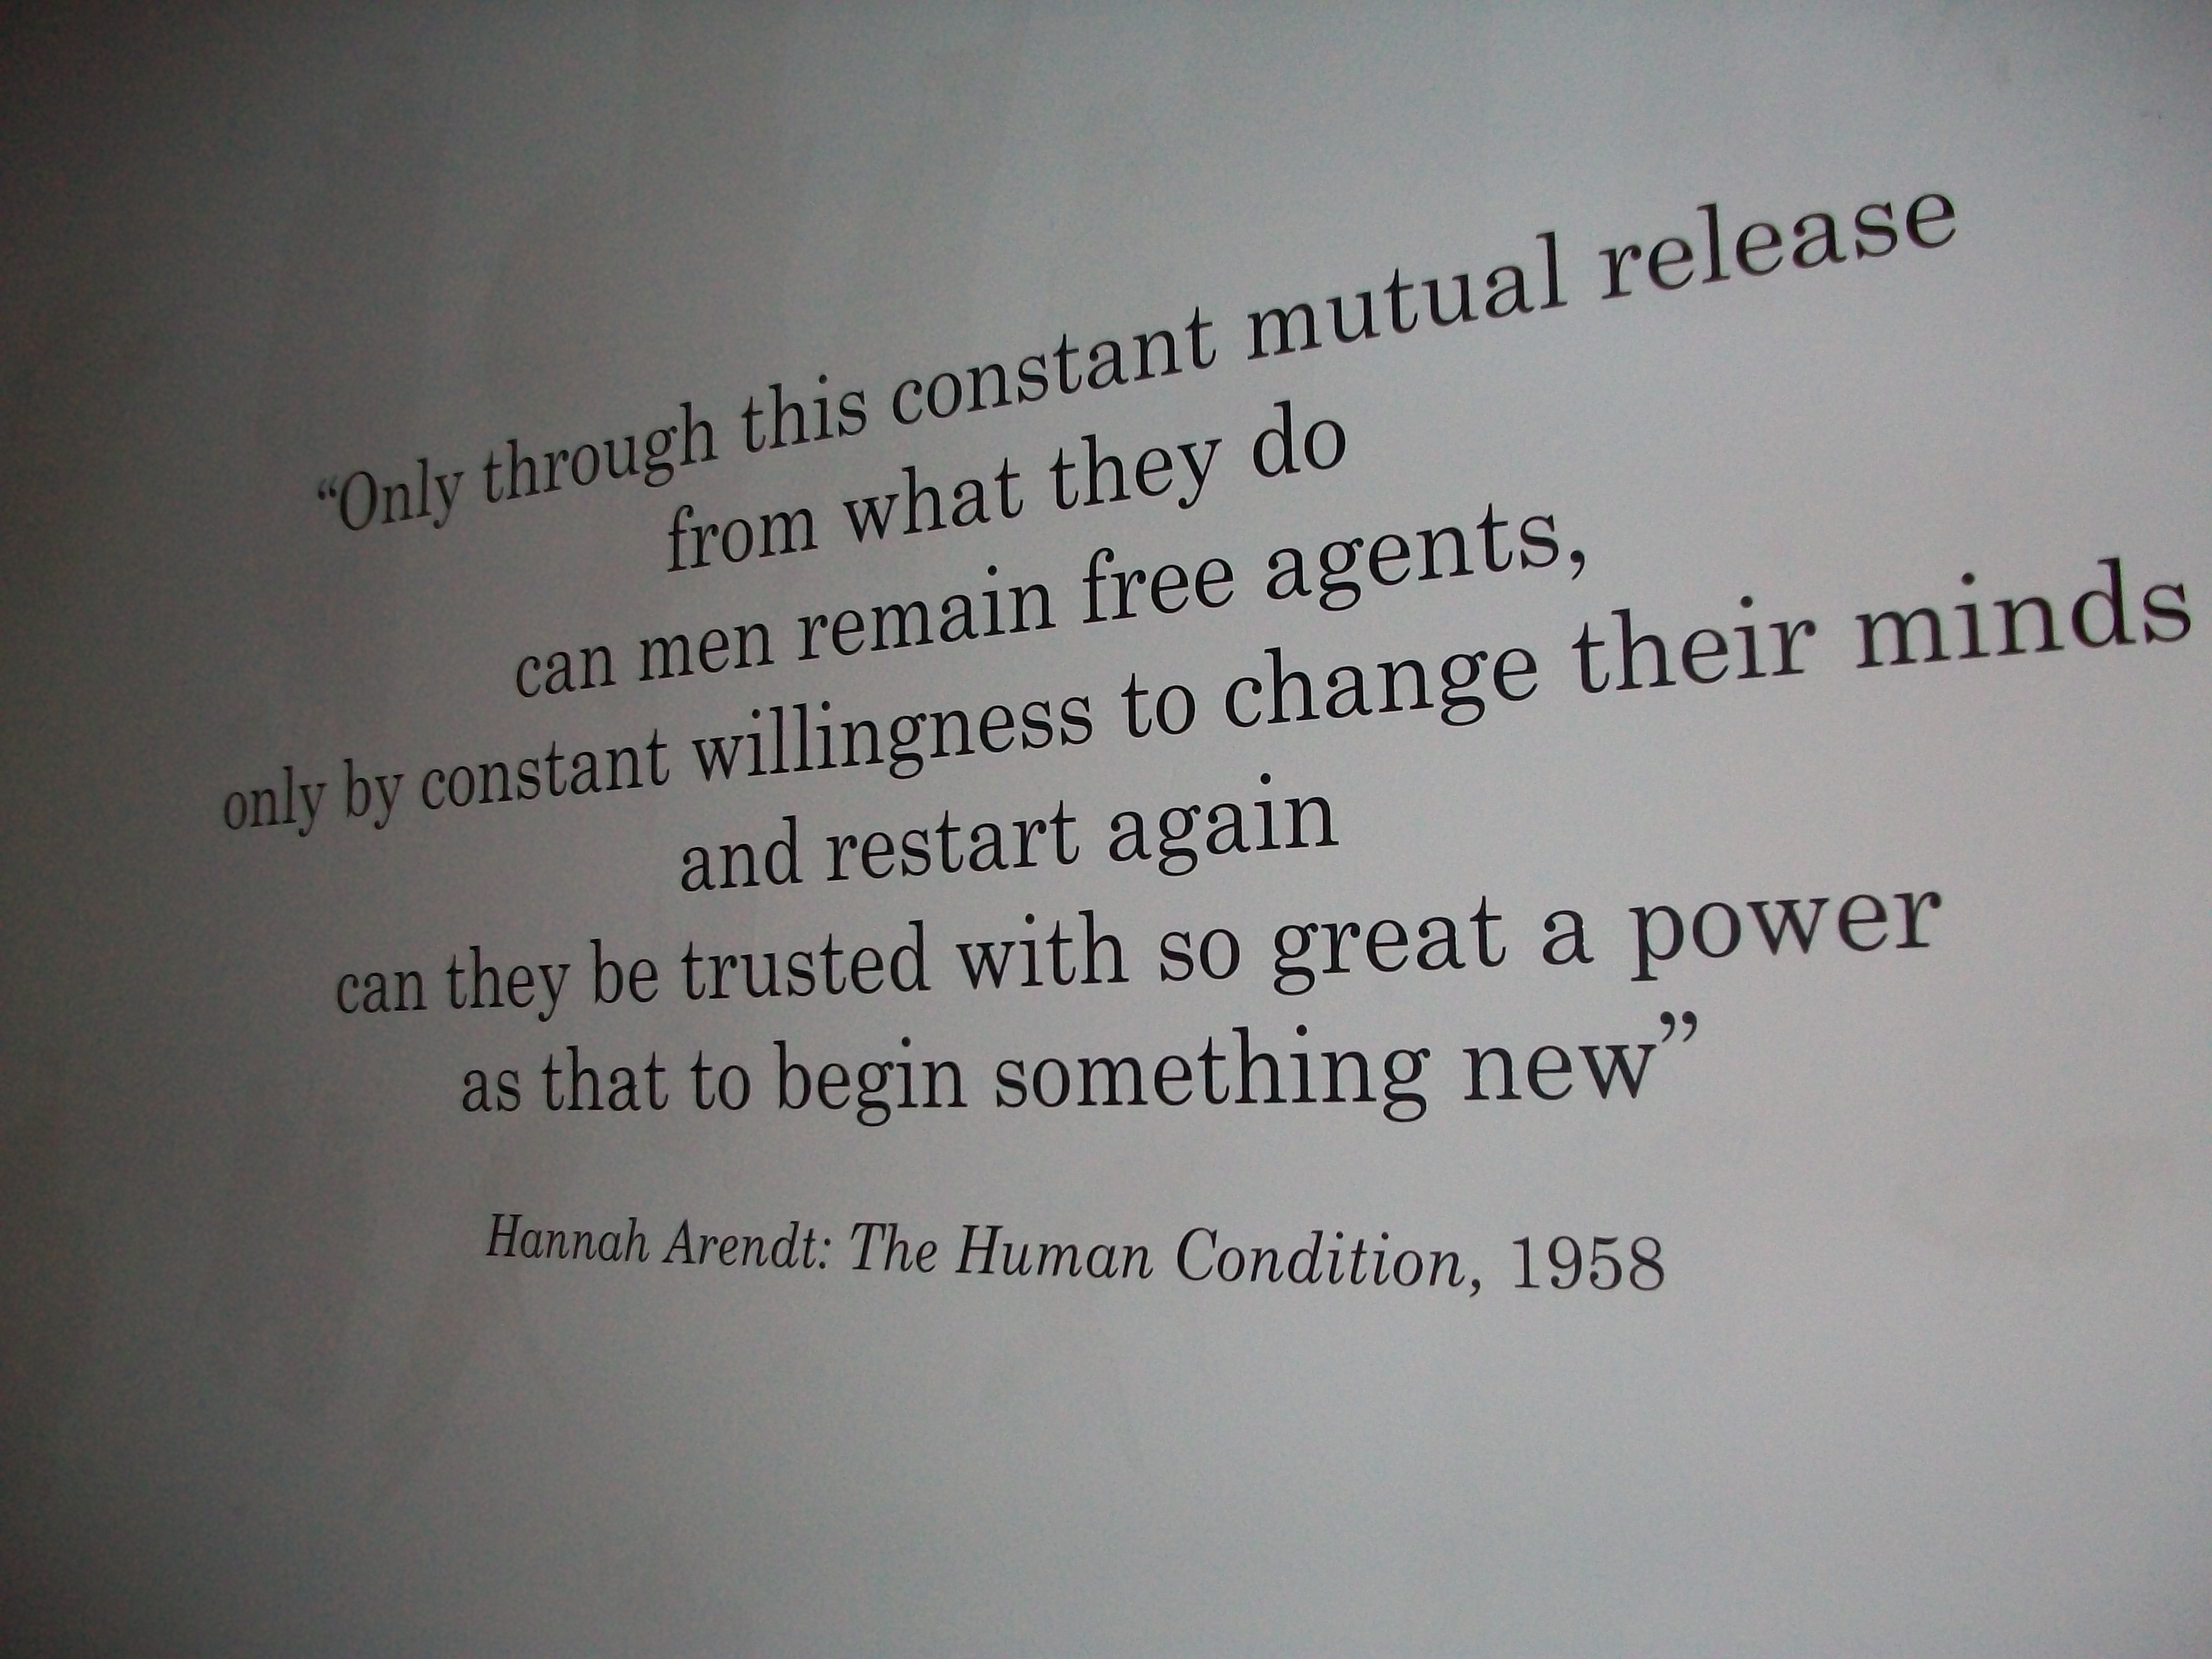 Hannah Arendt's quote #8